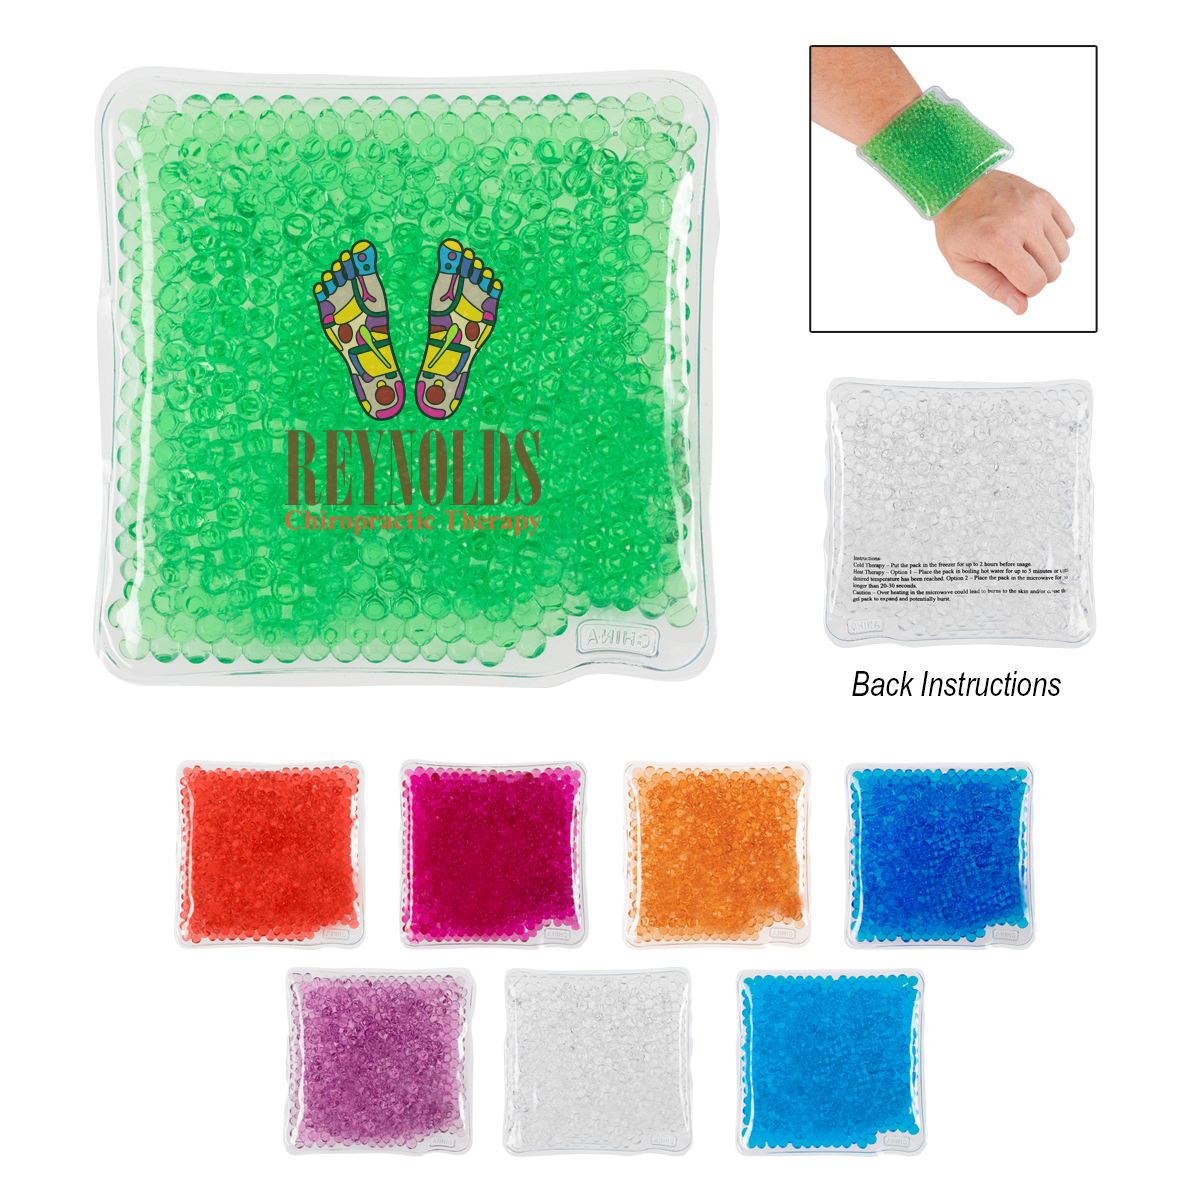 904474144-816 - Square Gel Beads Hot/Cold Pack - thumbnail